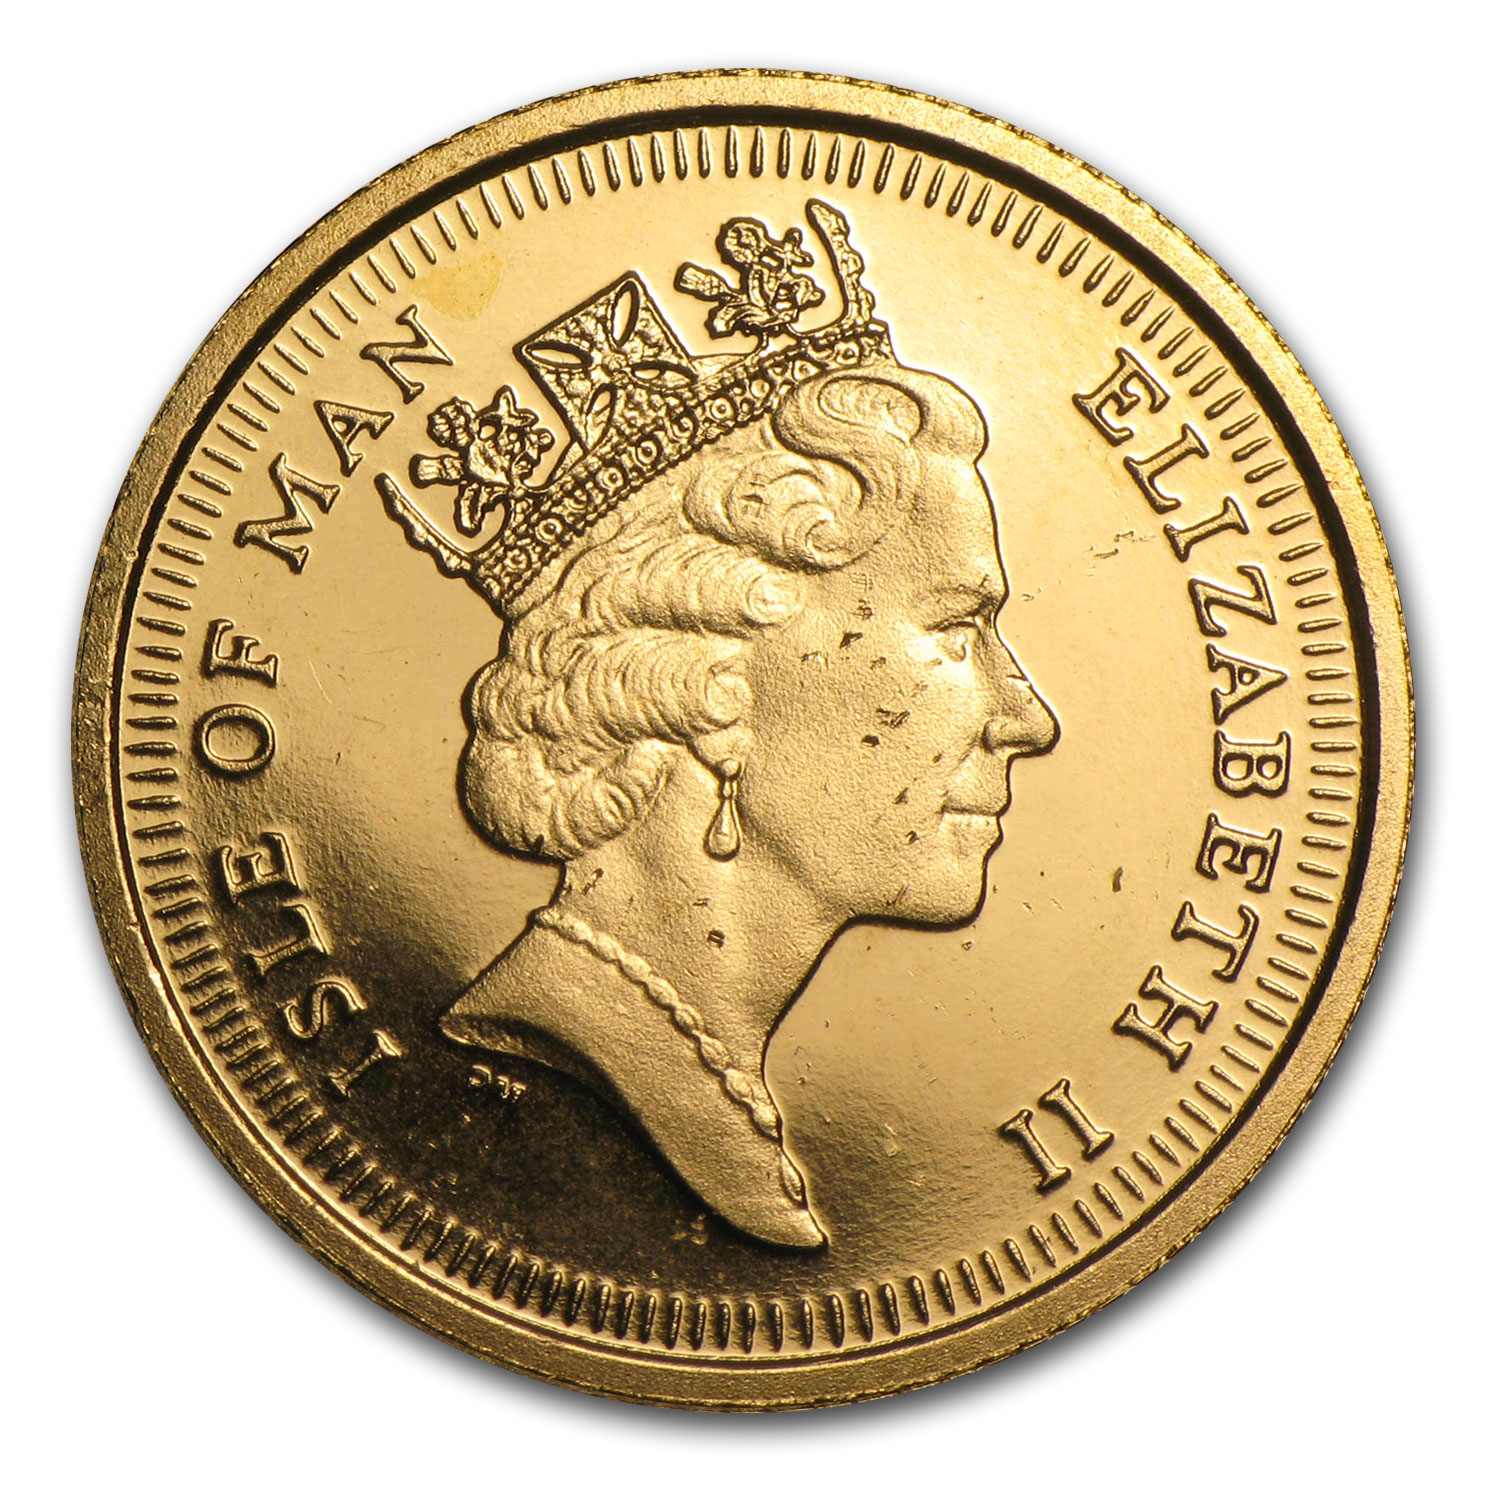 1991 Isle of Man Gold 1/2 Sovereign BU/Proof (Shields)